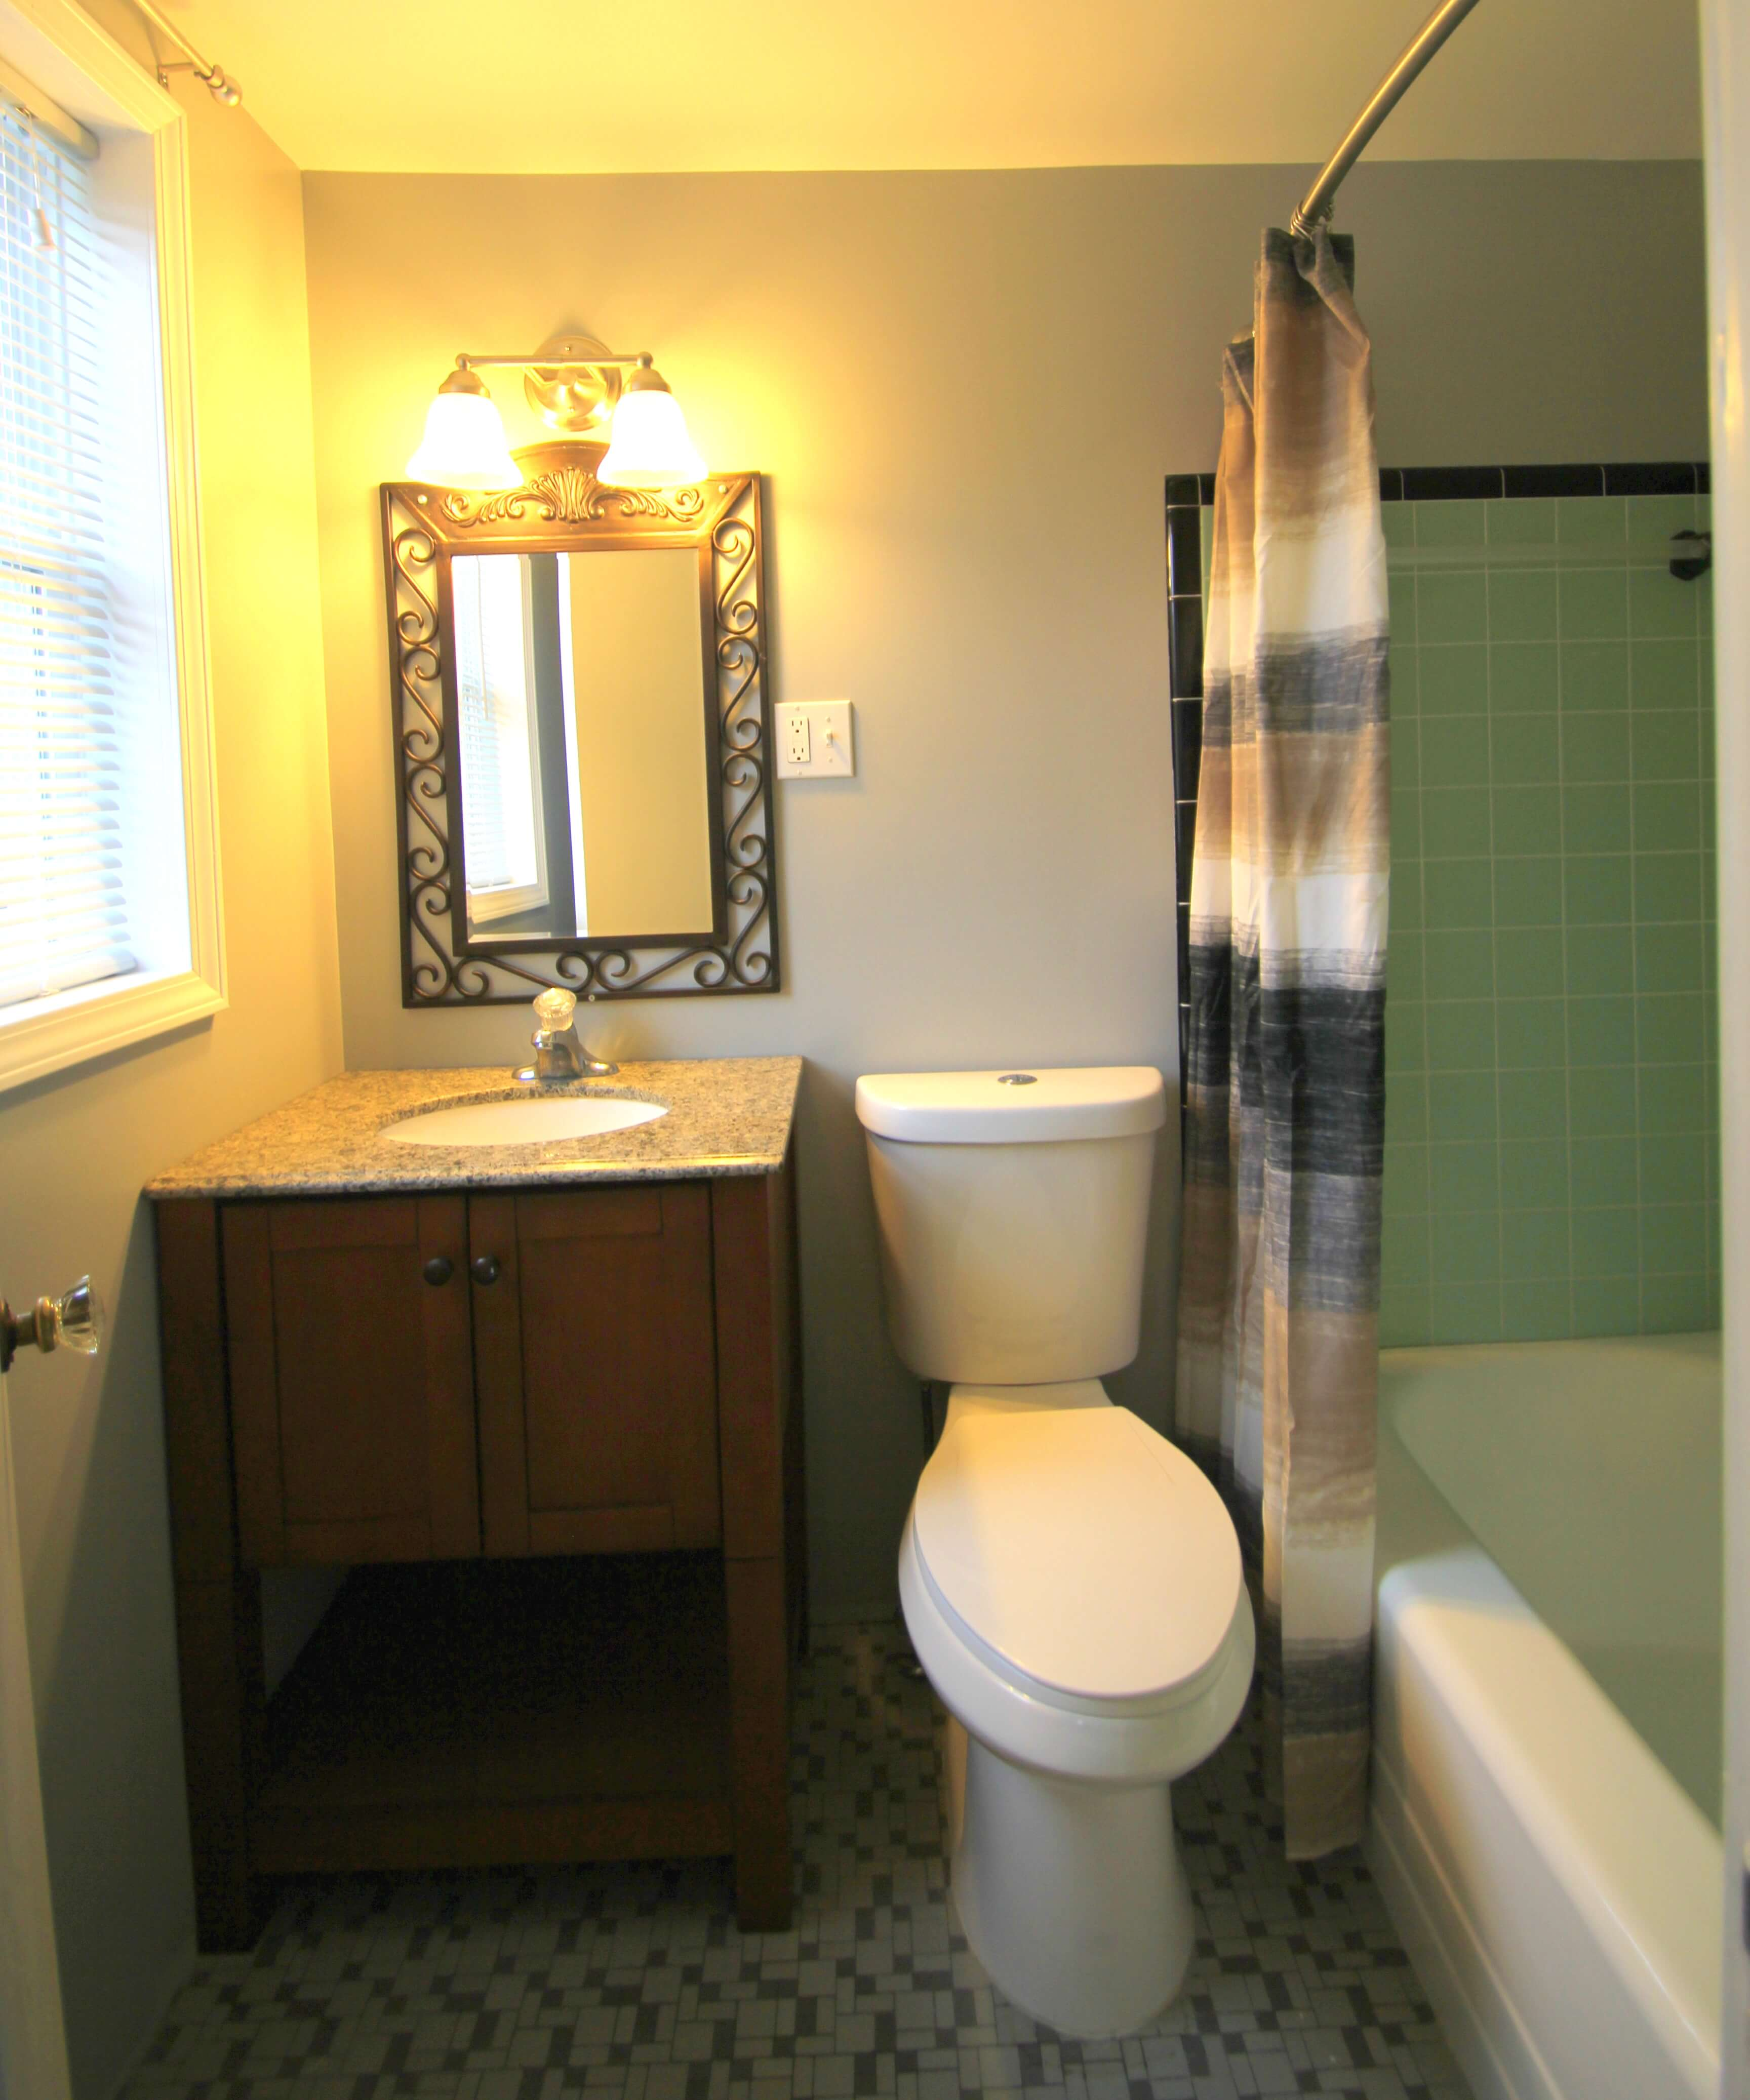 Recently remodeled bathroom inside one our motel rooms. © 2017 Frank Rogala.